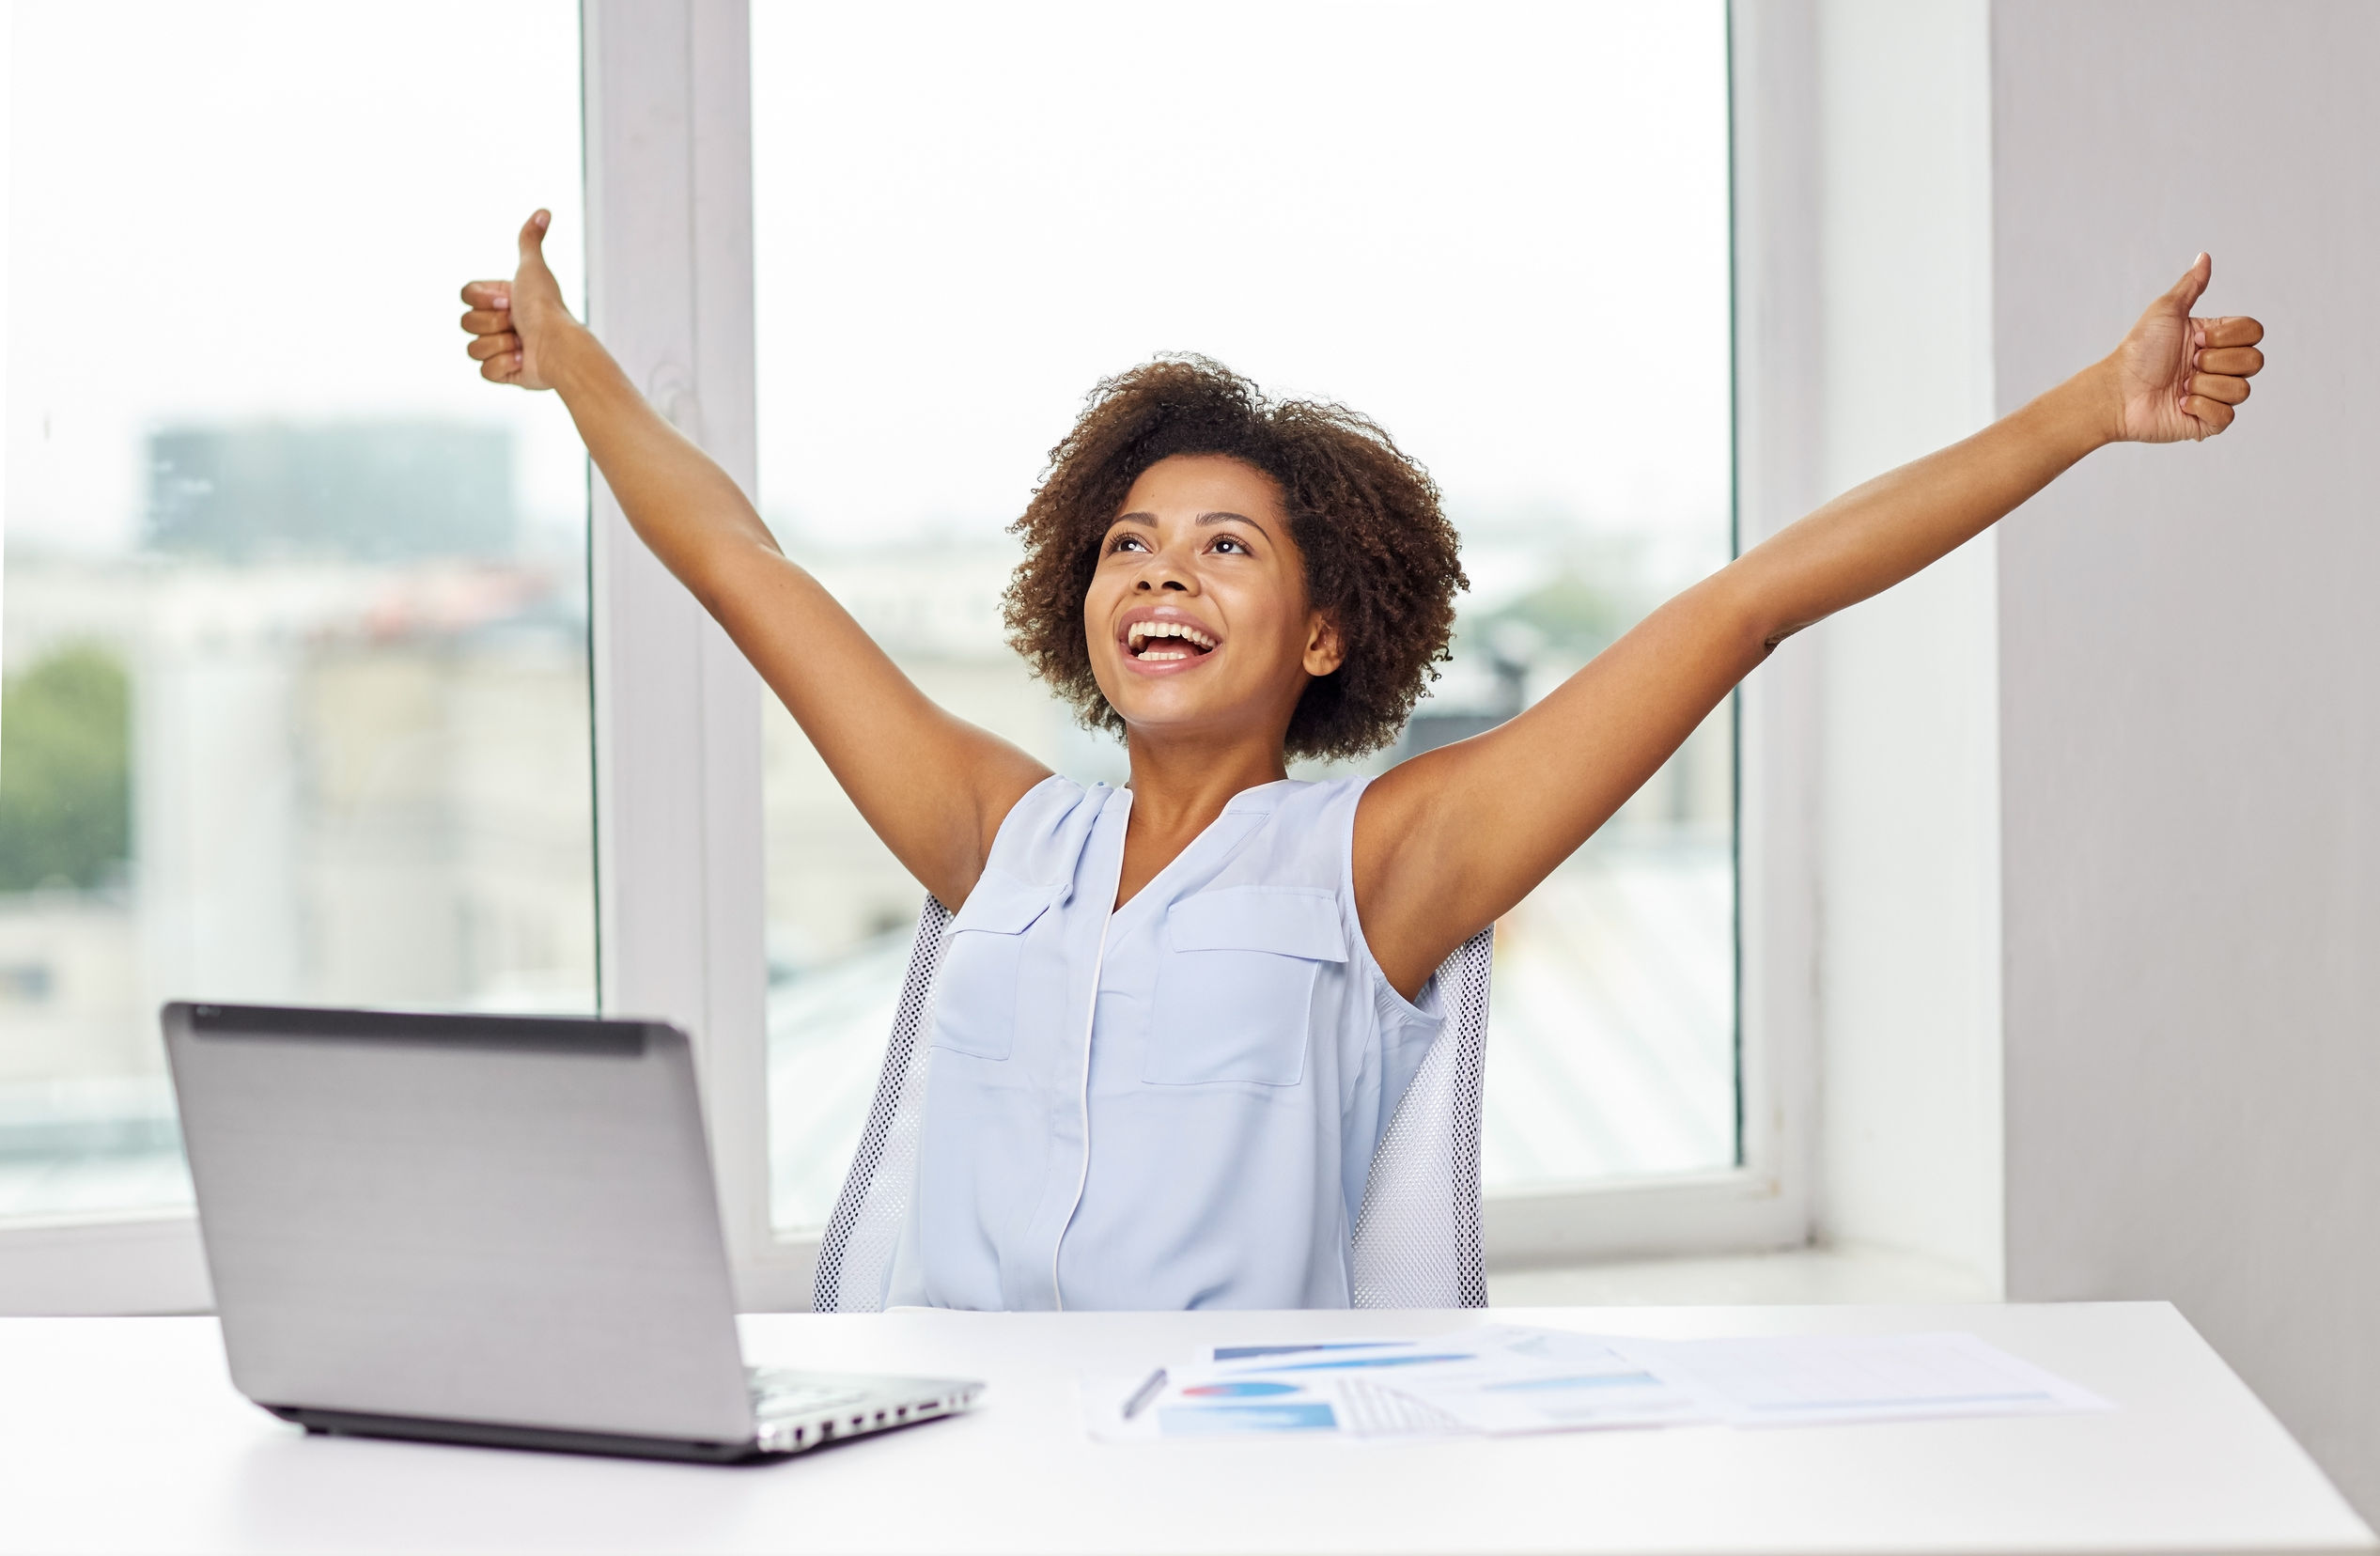 62066104 - education, business, success, gesture and technology concept - happy african american businesswoman or student with laptop computer and papers showing thumbs up and celebrating triumph at office